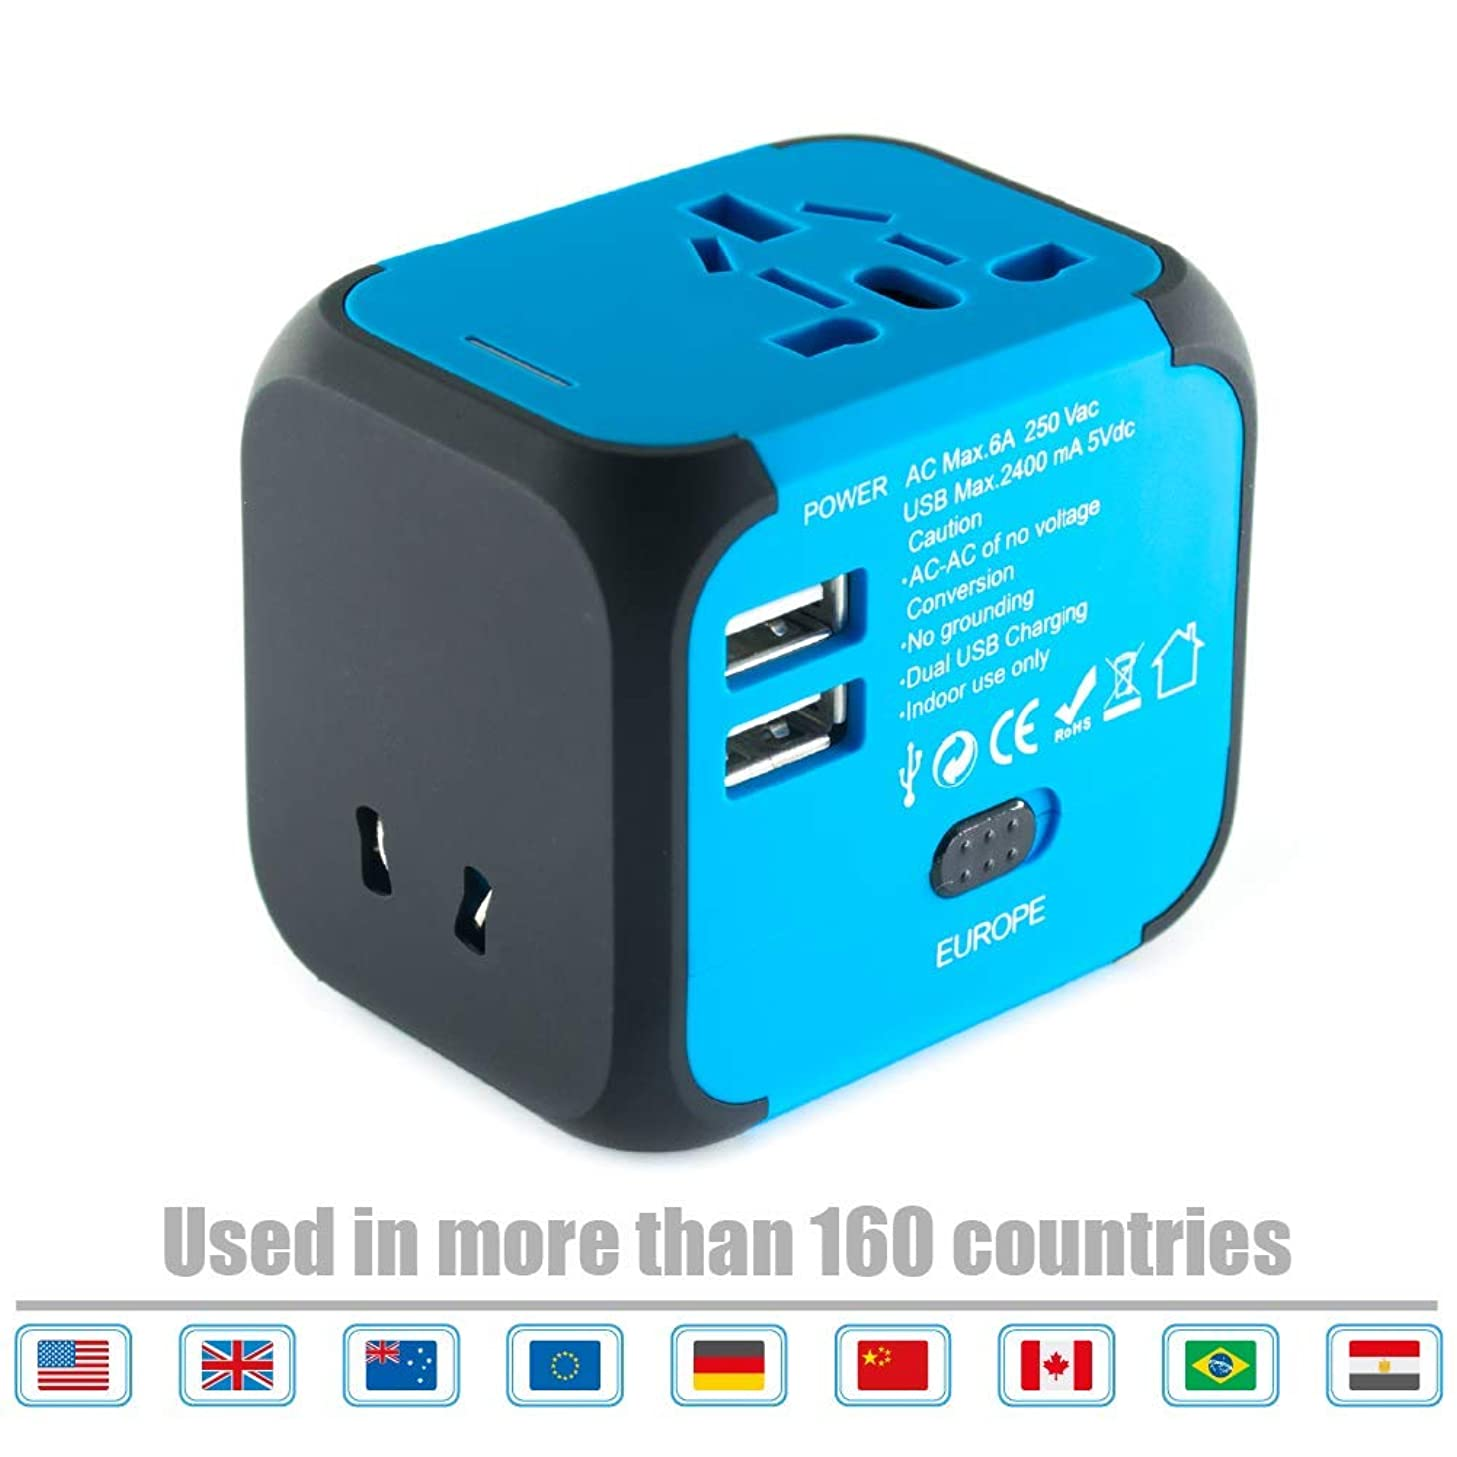 Limechoes International Travel Adapter Universal Power Adaptor European Plug Converter Worldwide All in One with 2.4A 2 USB Ports and AC Socket US to Europe Plug Adapters for UK USA EU AUS Asia (Blue)